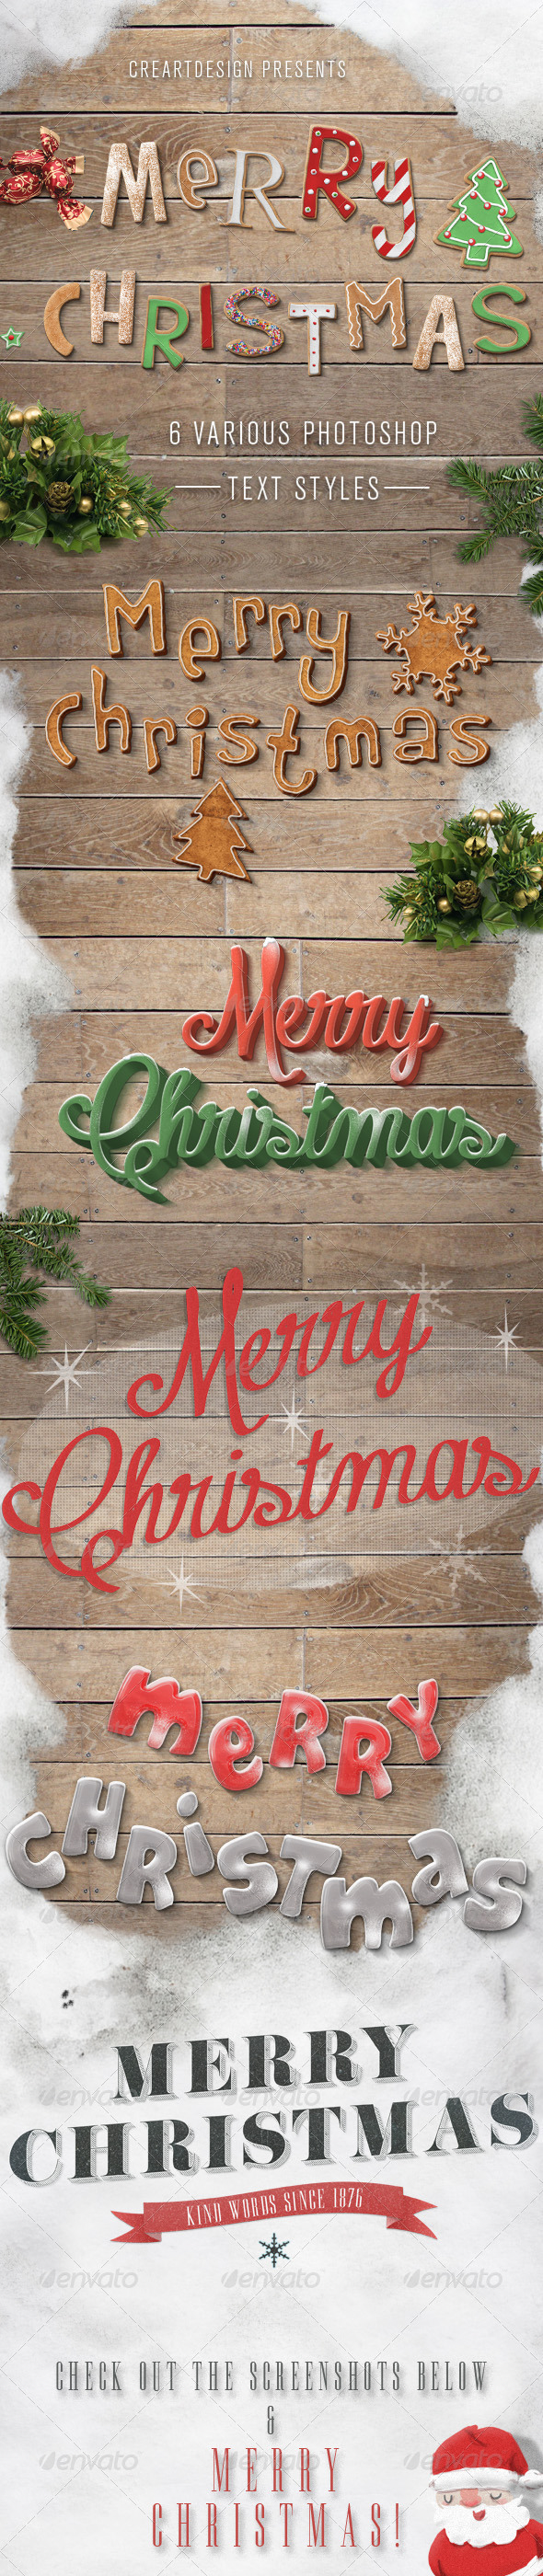 Christmas Text Effects And Styles - Text Effects Styles